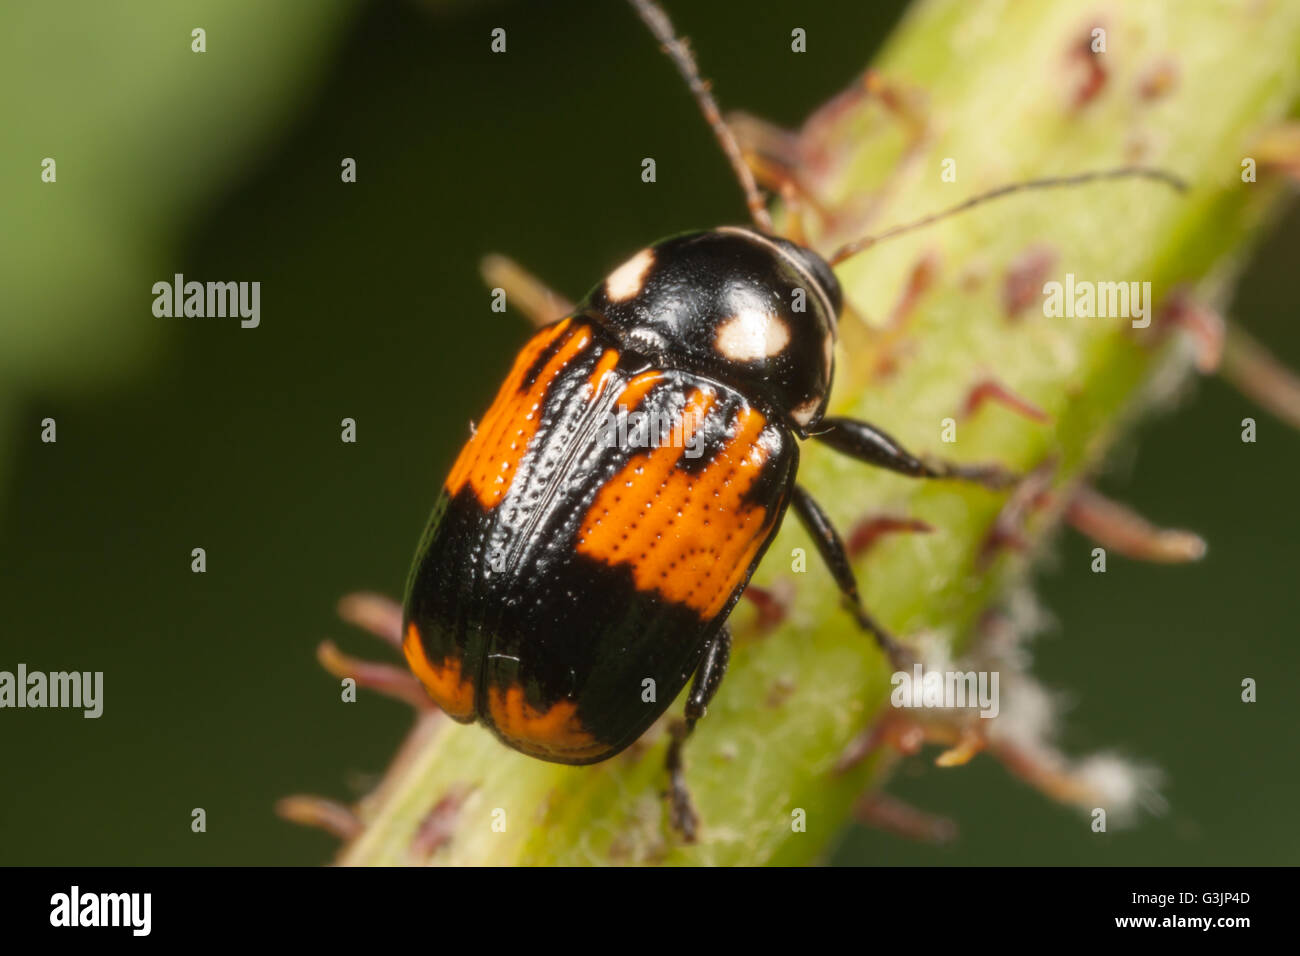 A Case-bearing Leaf Beetle (Bassareus mammifer) perches on plant stem. - Stock Image